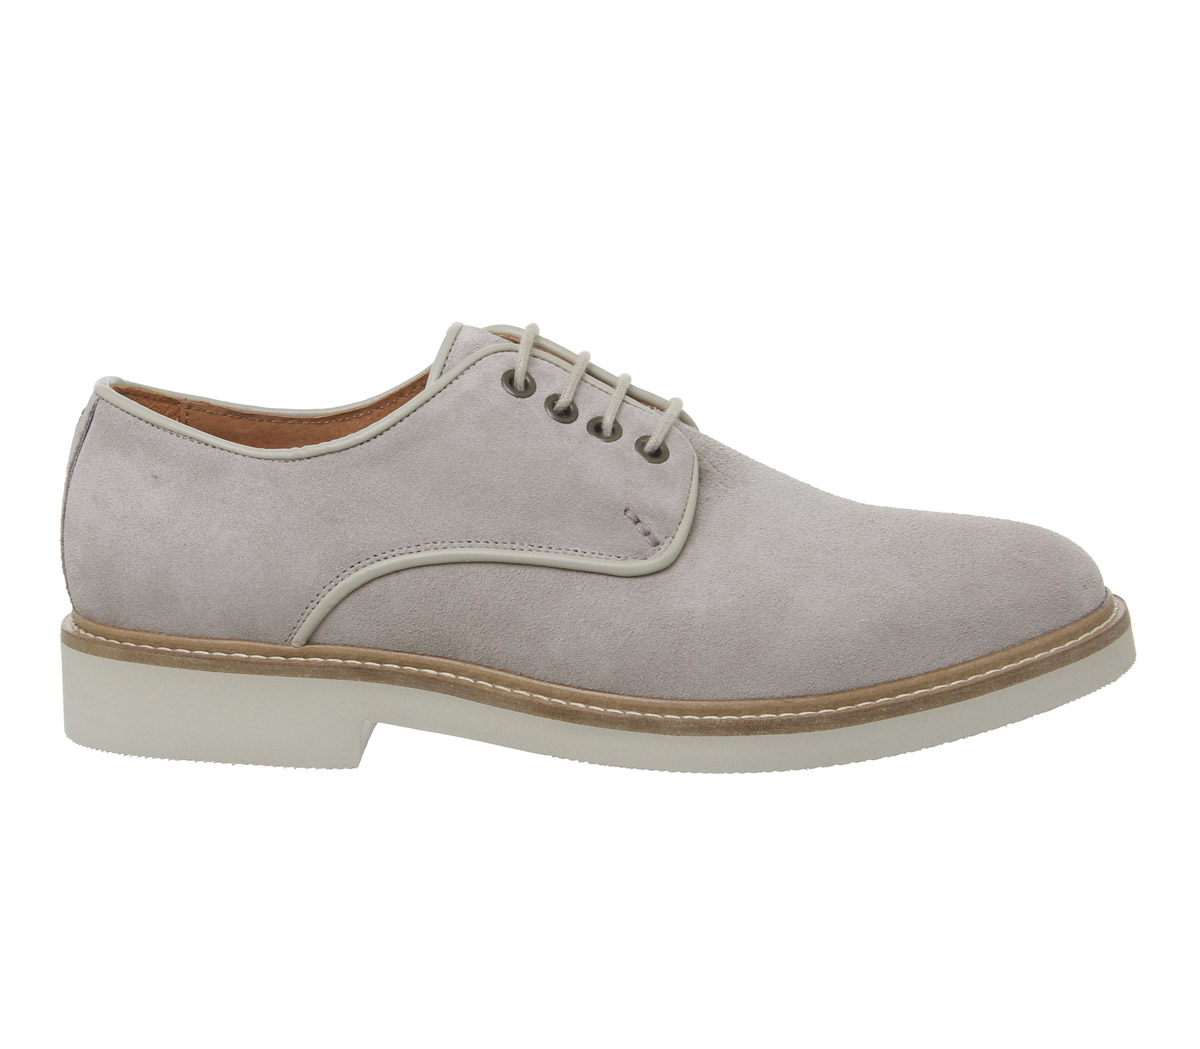 Mens Shoe The Bear Greenwich Derby Shoes Taupe Suede Casual Shoes